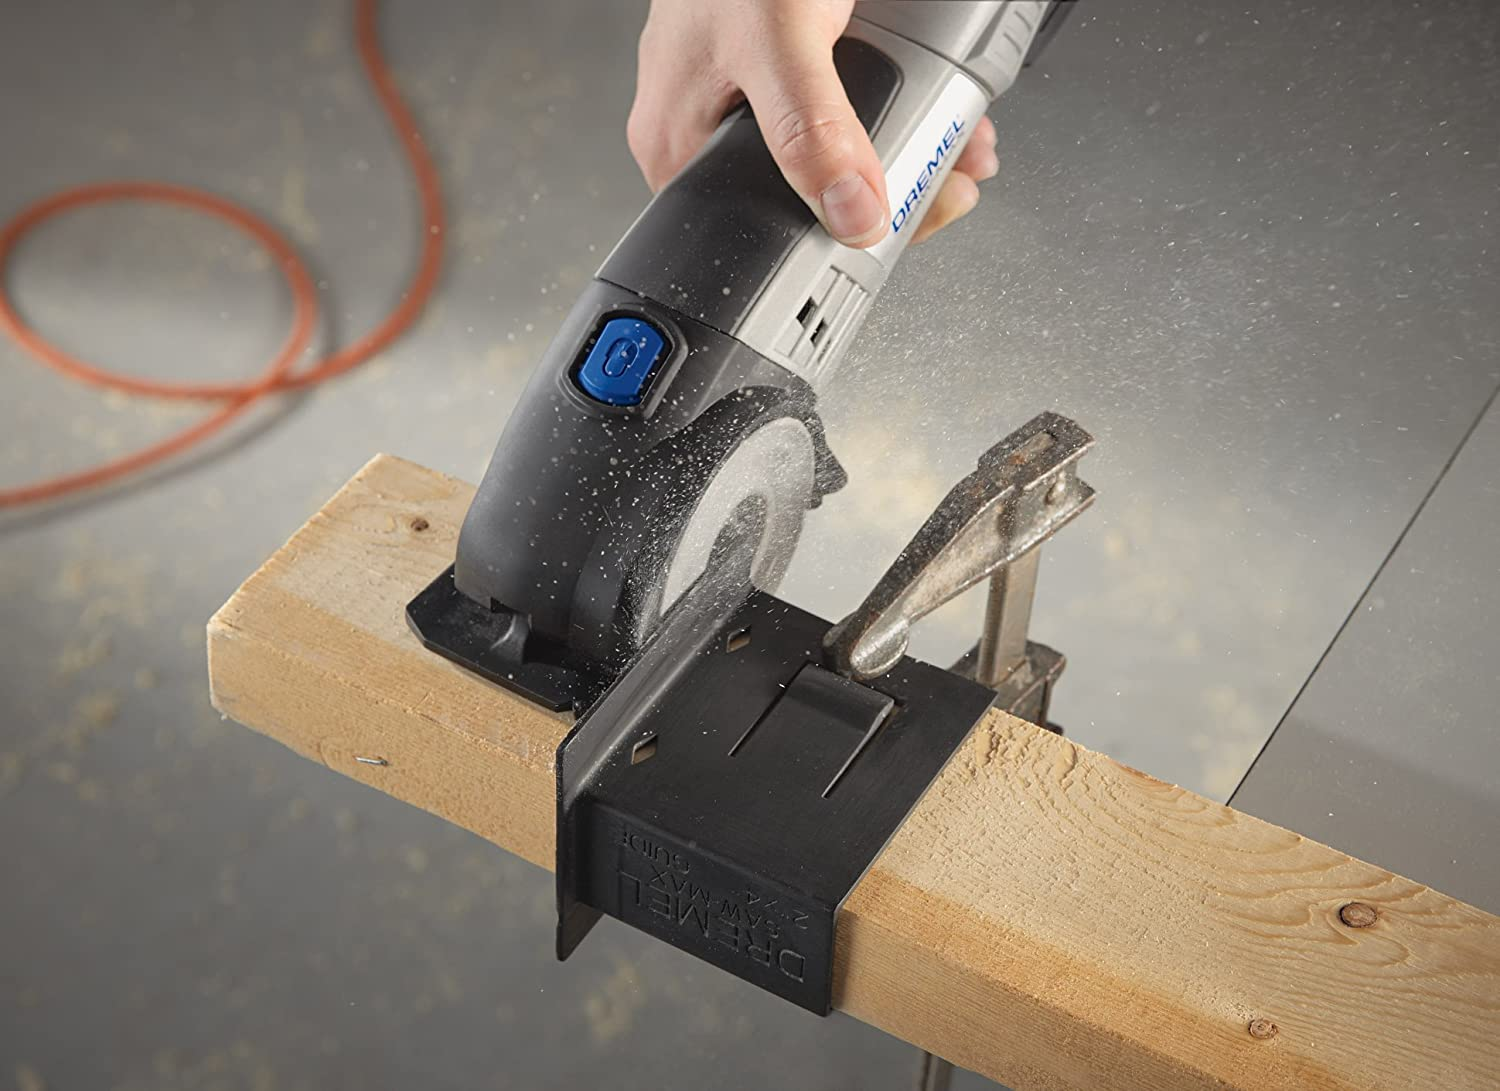 Check out Which Dremel Tool Is Right For You? at https://diyprojects.com/dremel-tool/